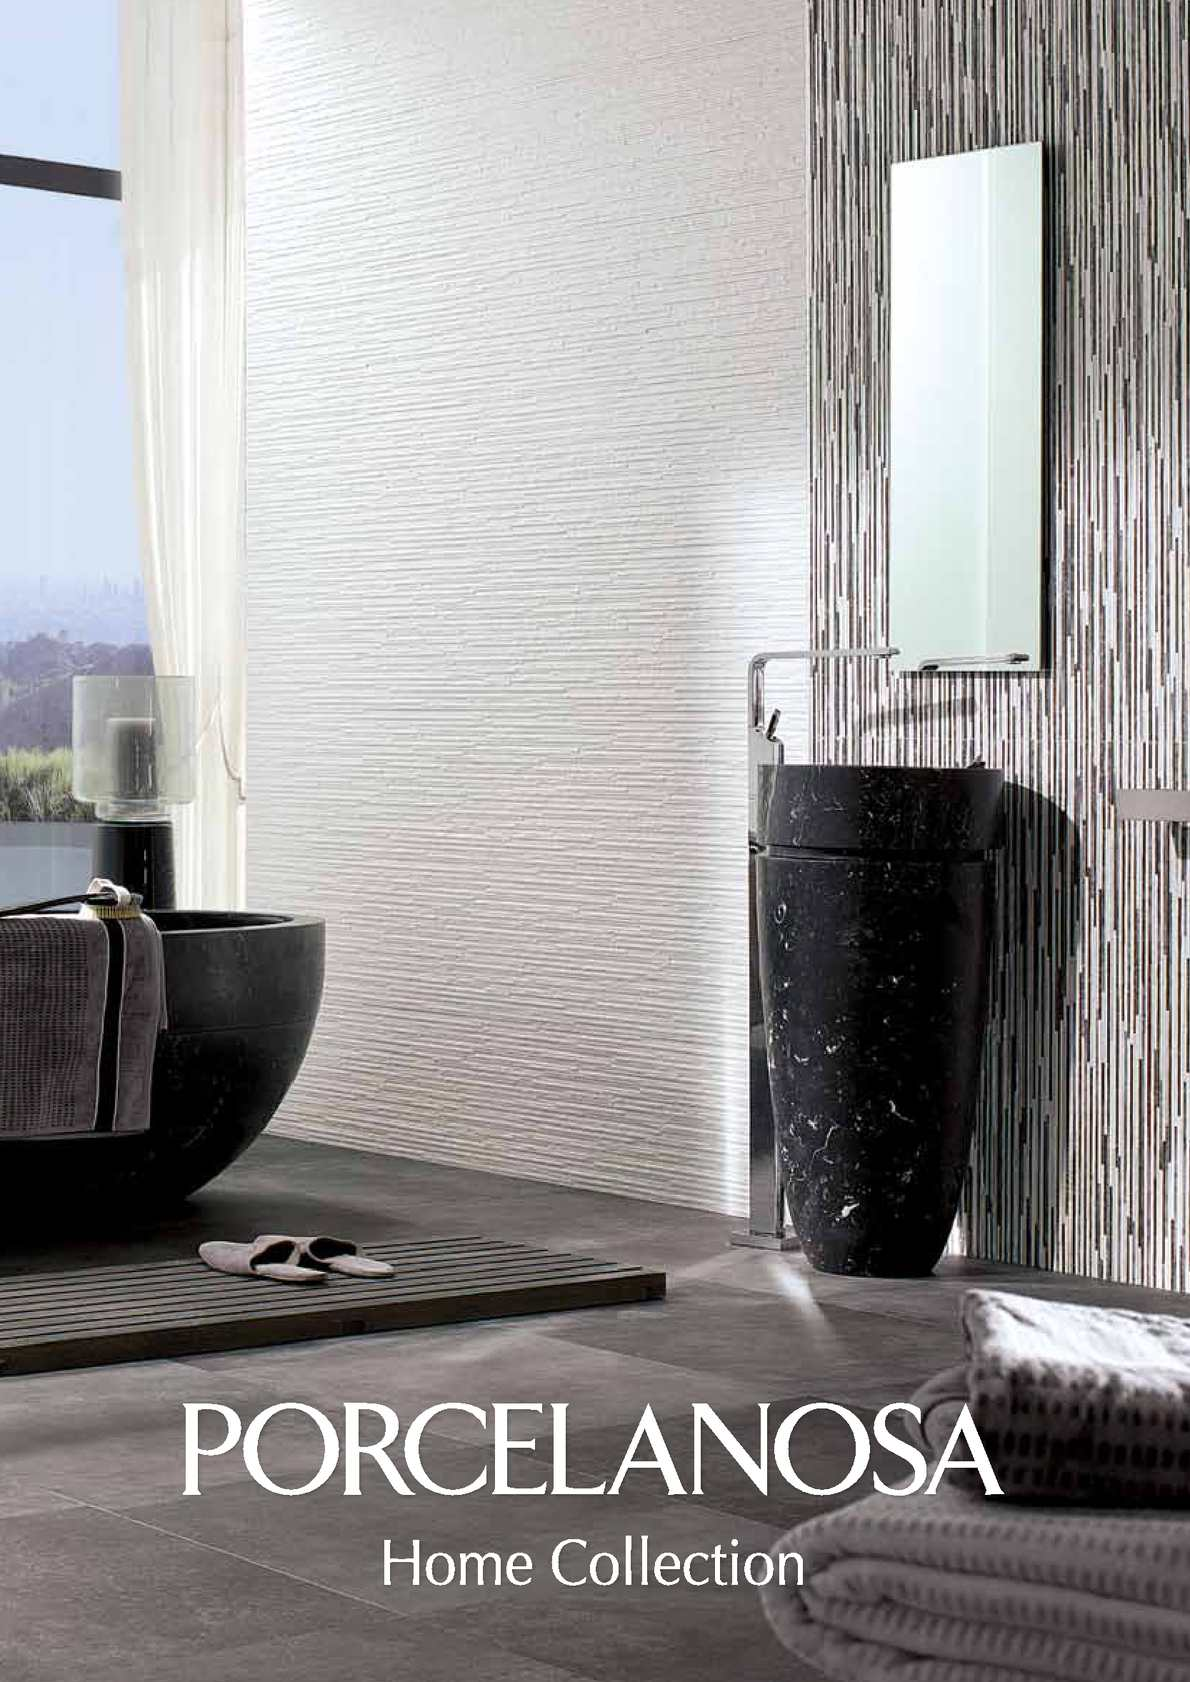 Calam o catalogue porcelanosa home collection for Meuble salle de bain porcelanosa